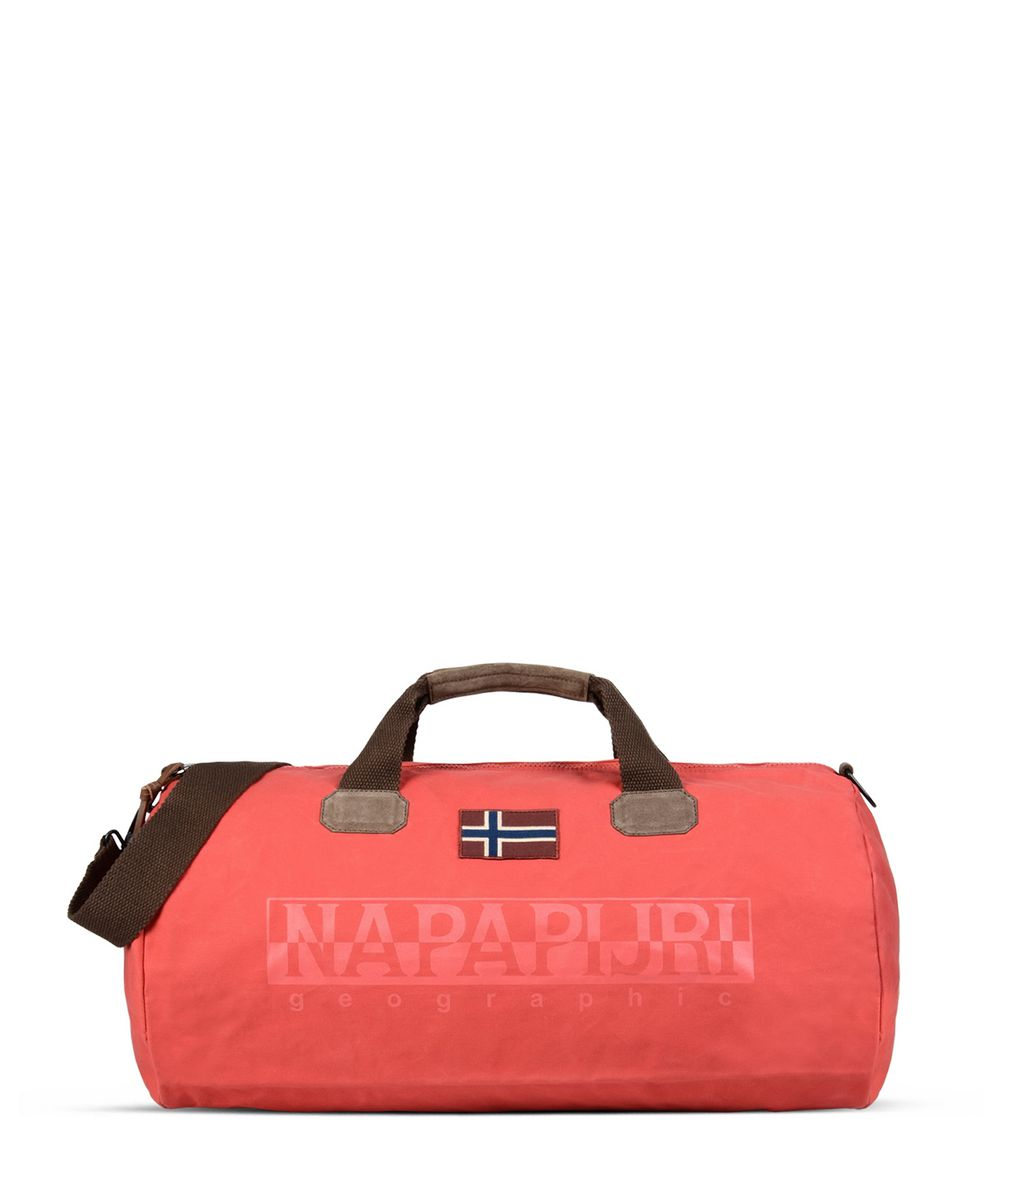 NAPAPIJRI BERING   TRAVEL BAG,DARK CORAL